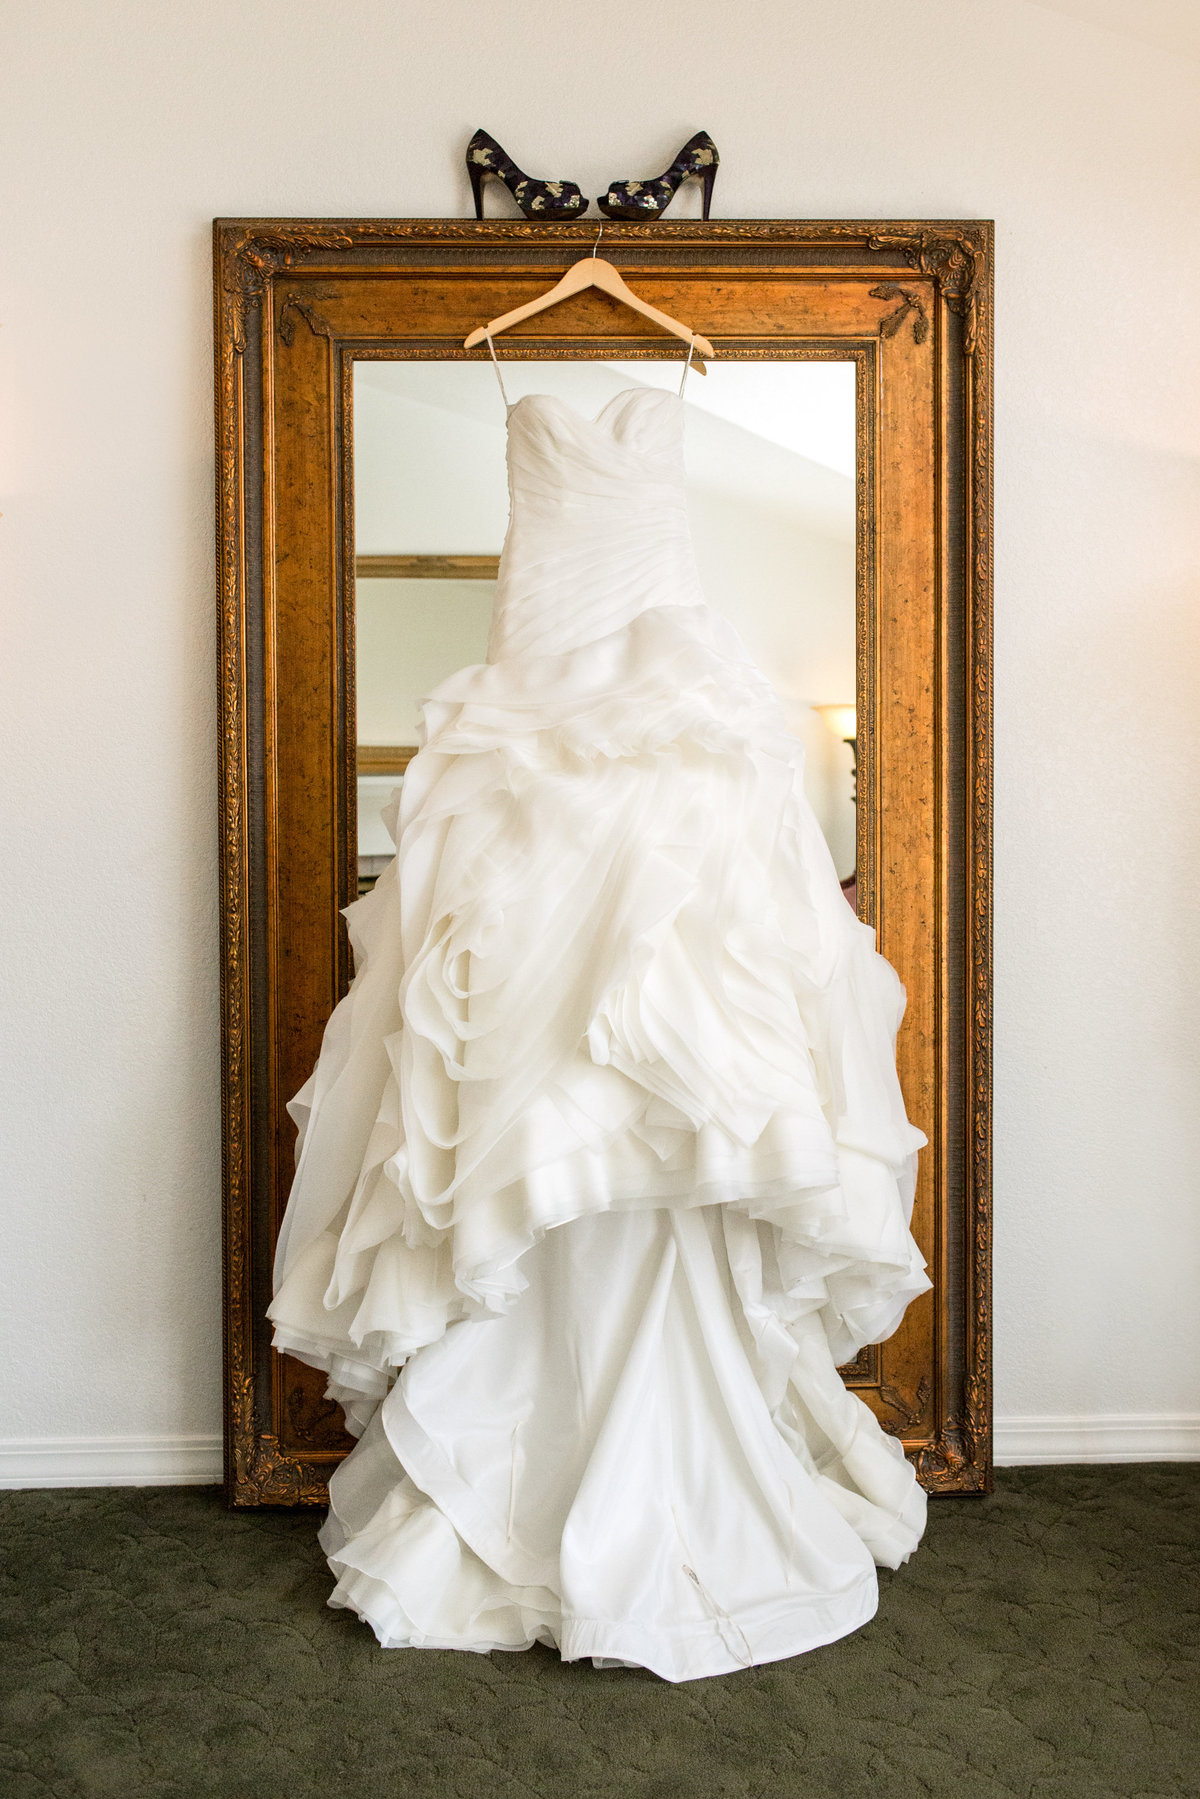 lionscrest-manor-wedding-dress